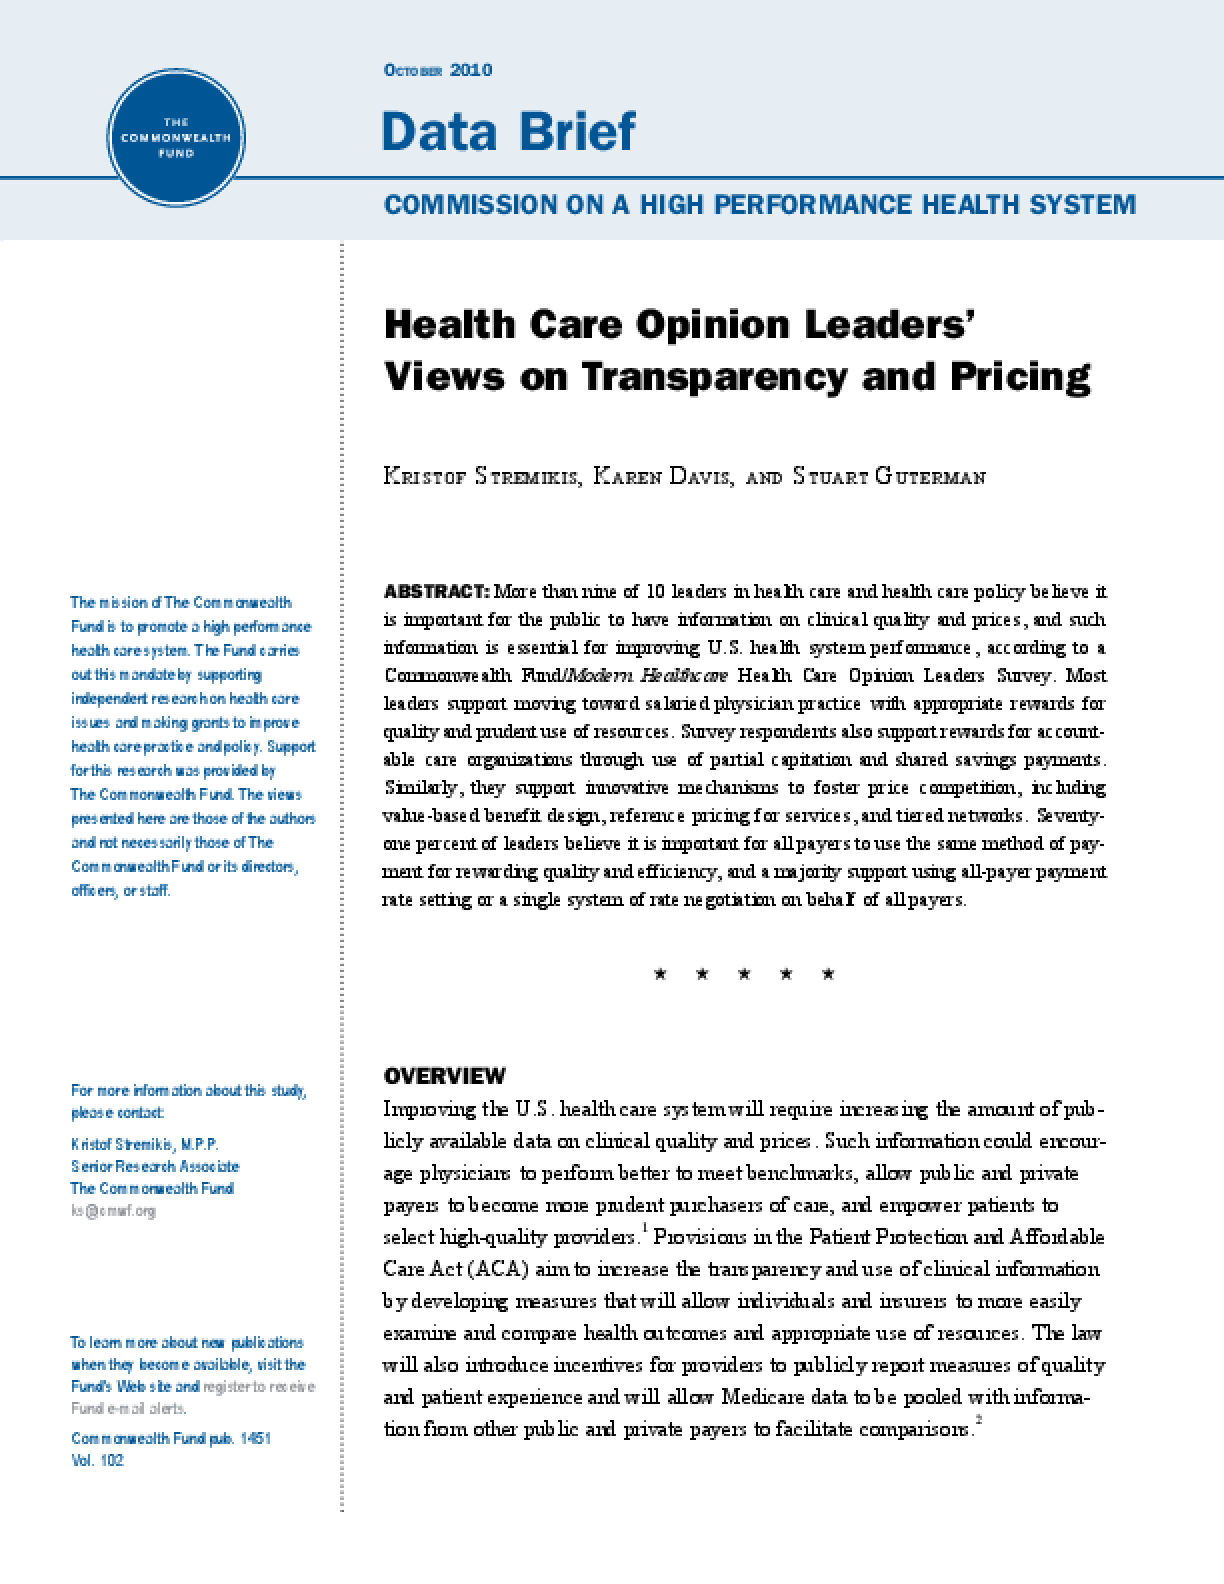 Health Care Opinion Leaders' Views on Transparency and Pricing